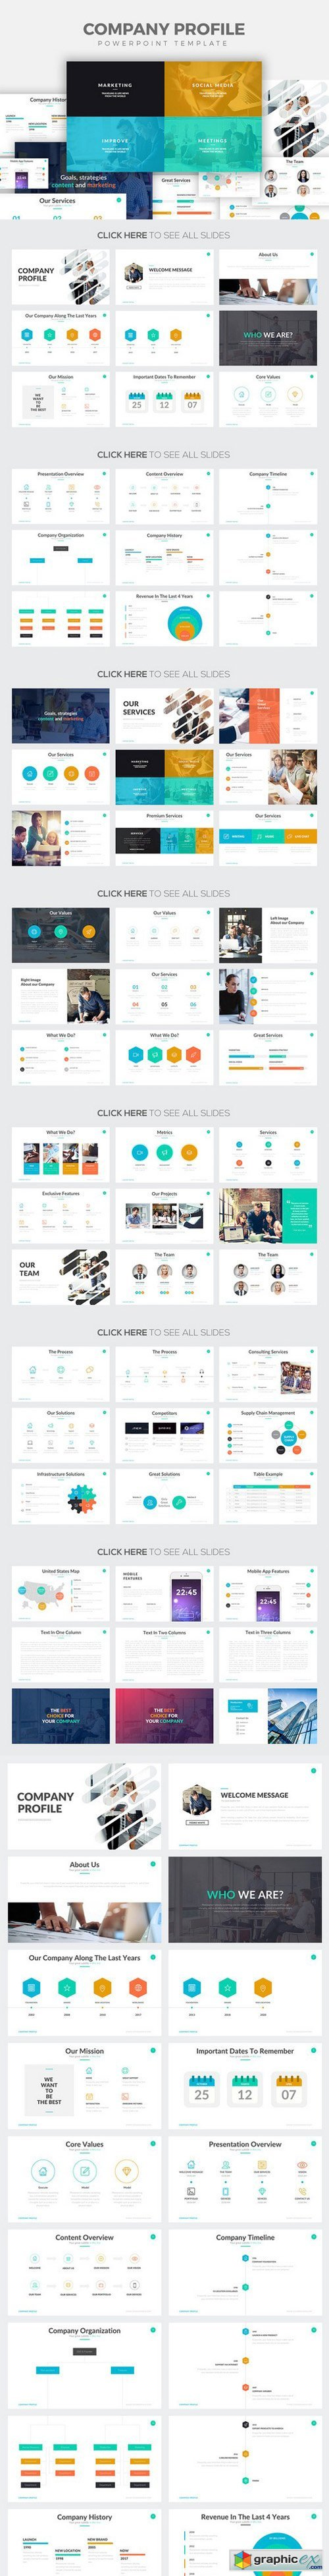 Company Profile Powerpoint Template 800462 Free Download Vector